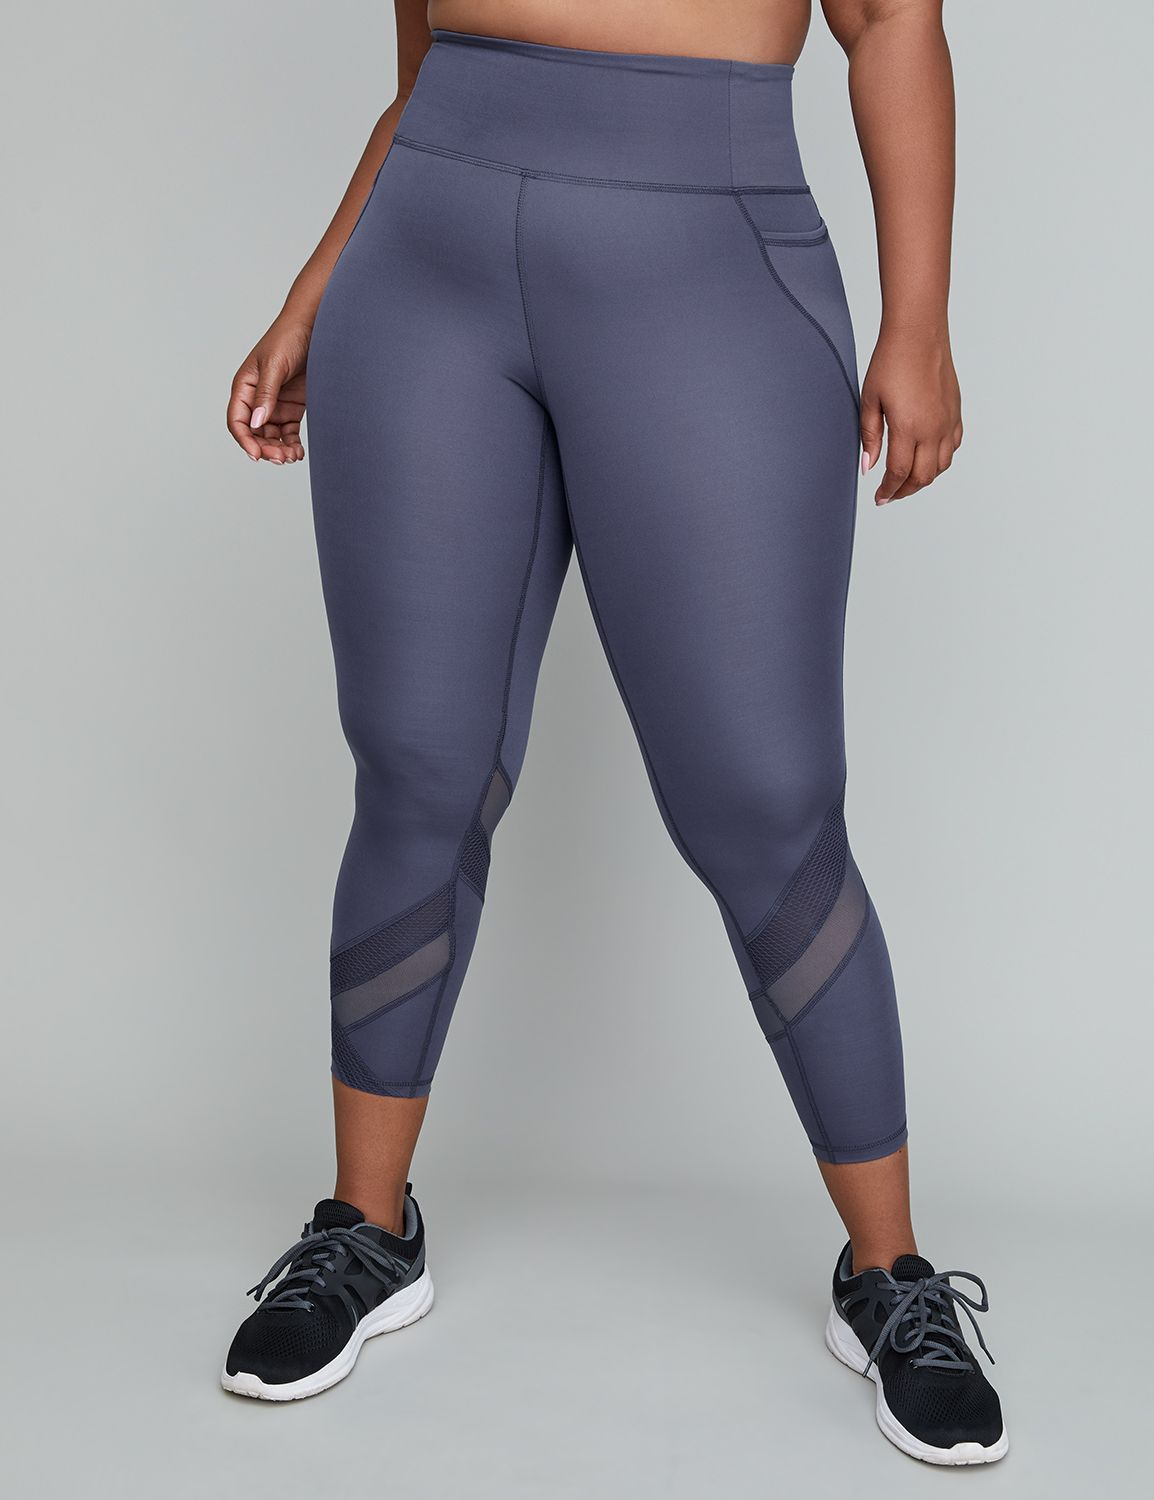 16c9afc31a0 Sculpting Active 7 8 Legging - Mixed Mesh Insets Lane Bryant